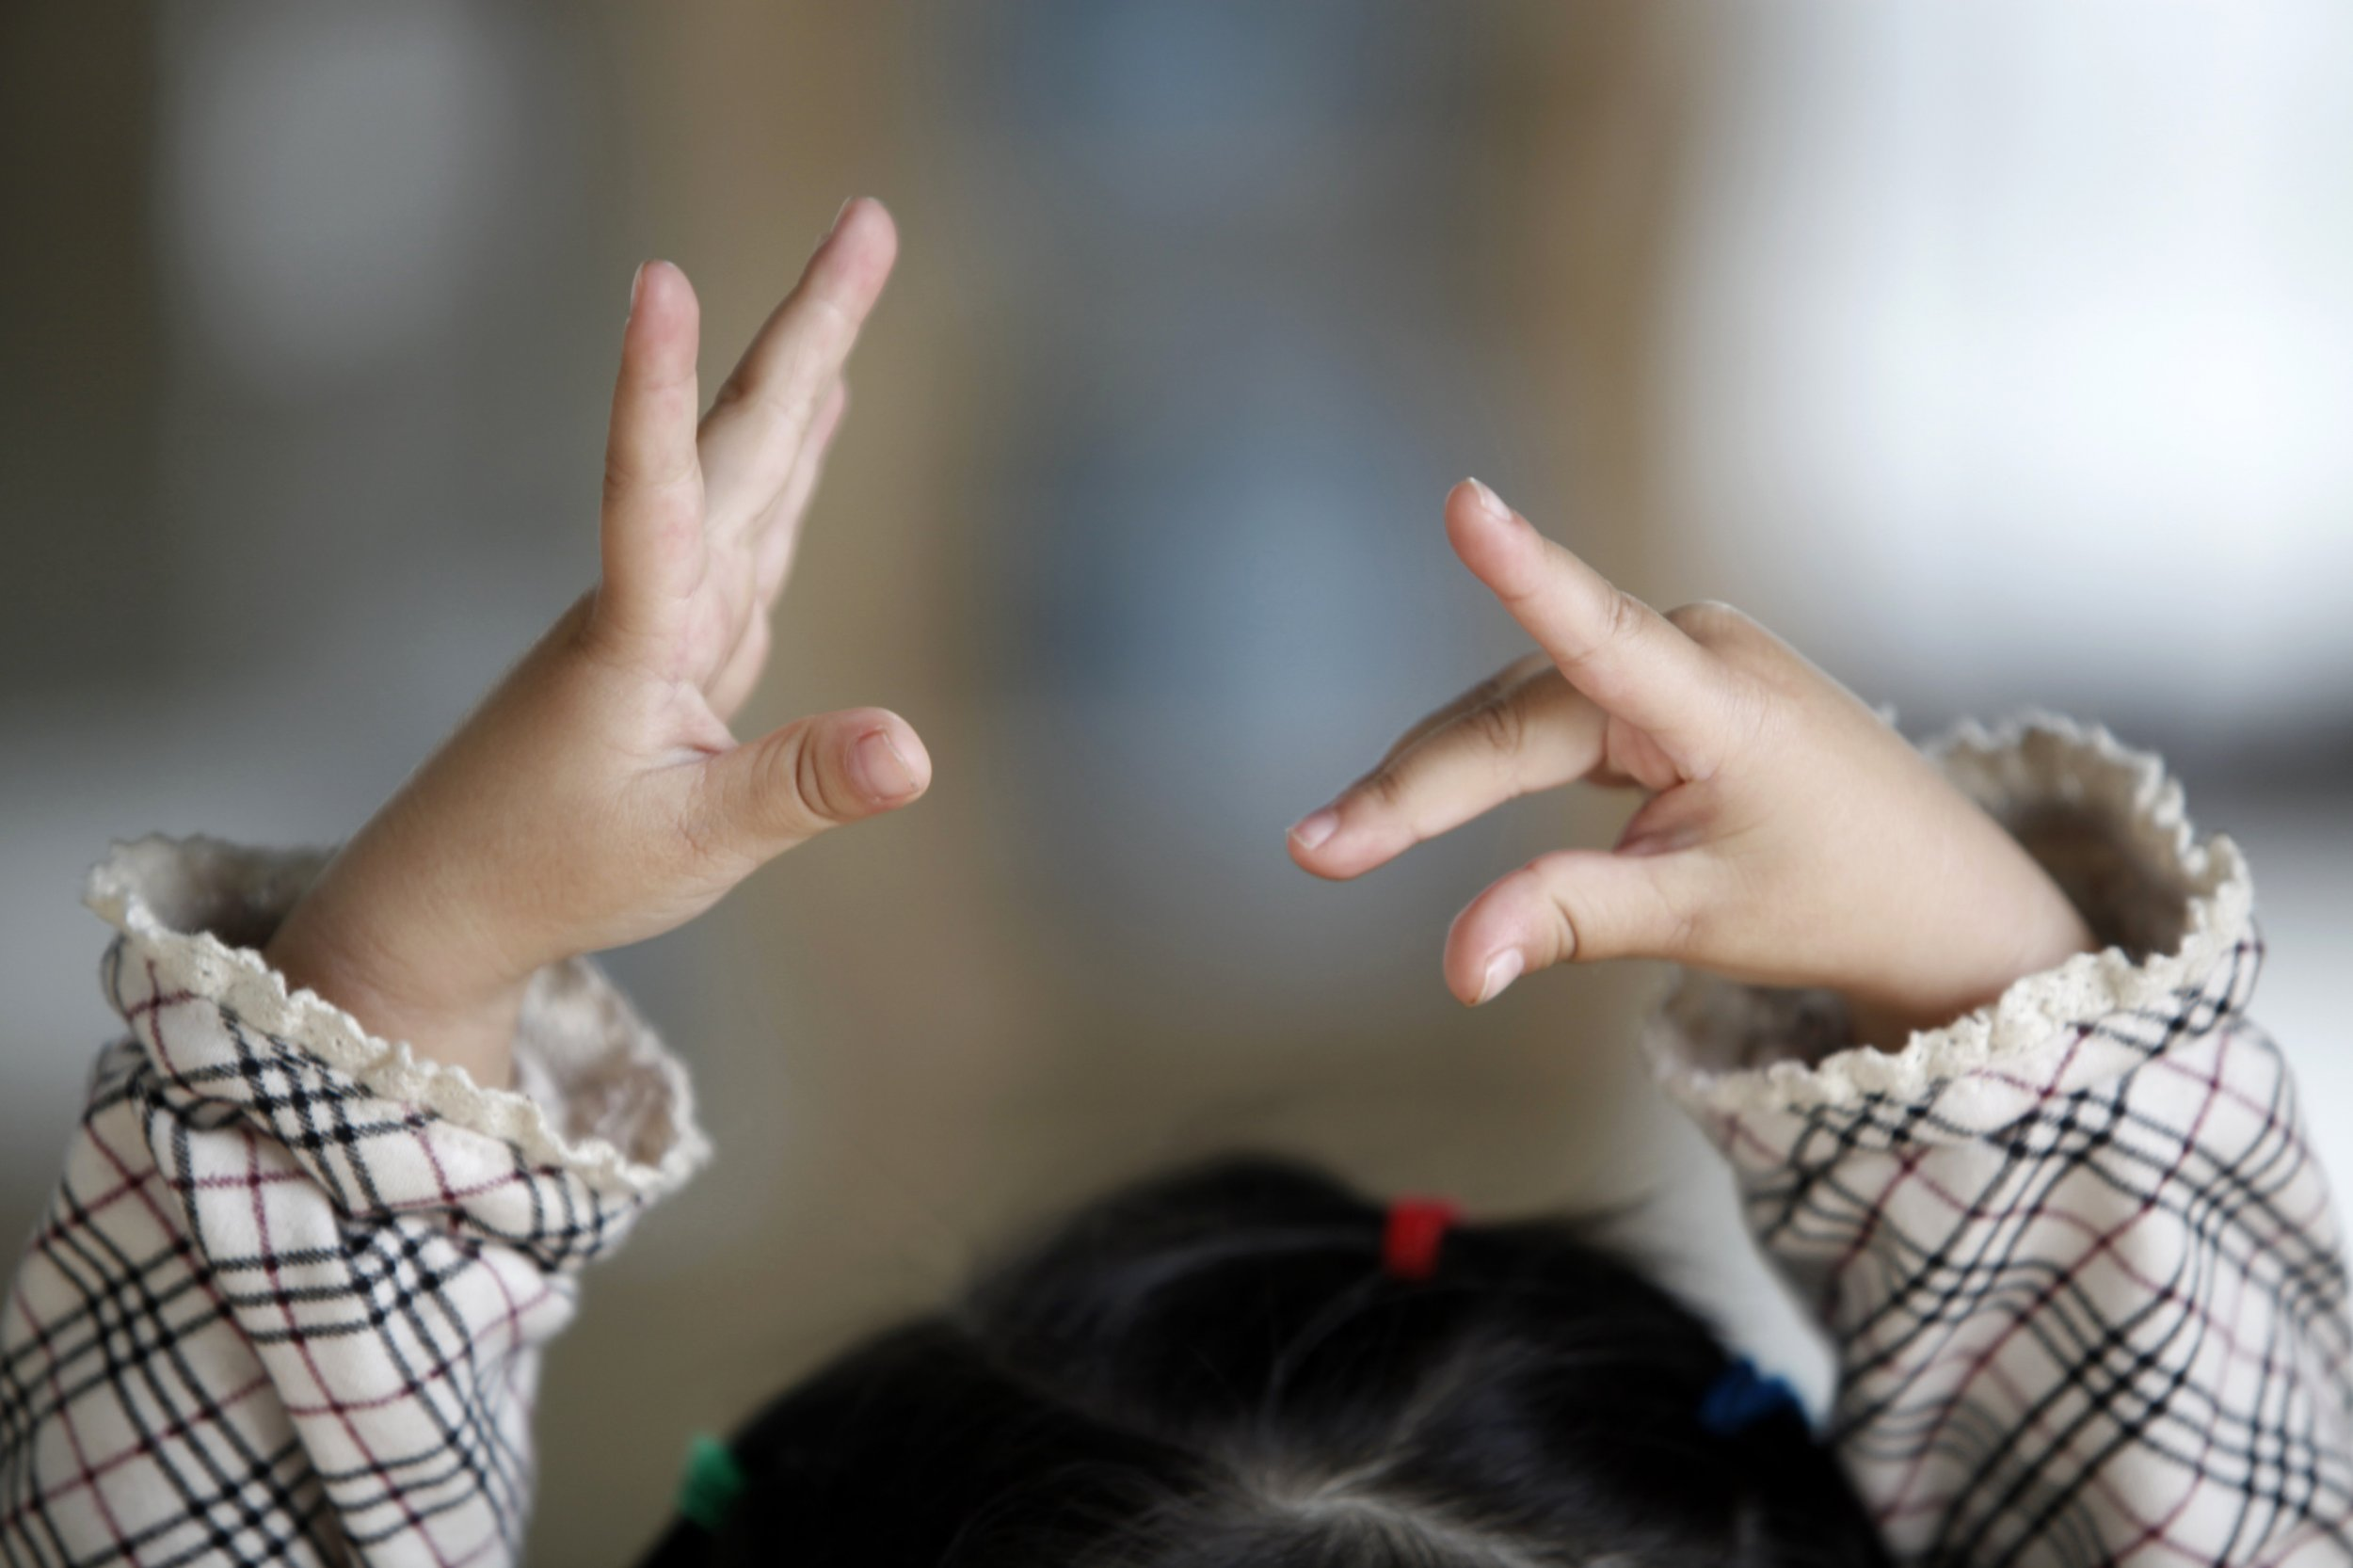 Why Thinking With Your Hands Helps Problem-Solving